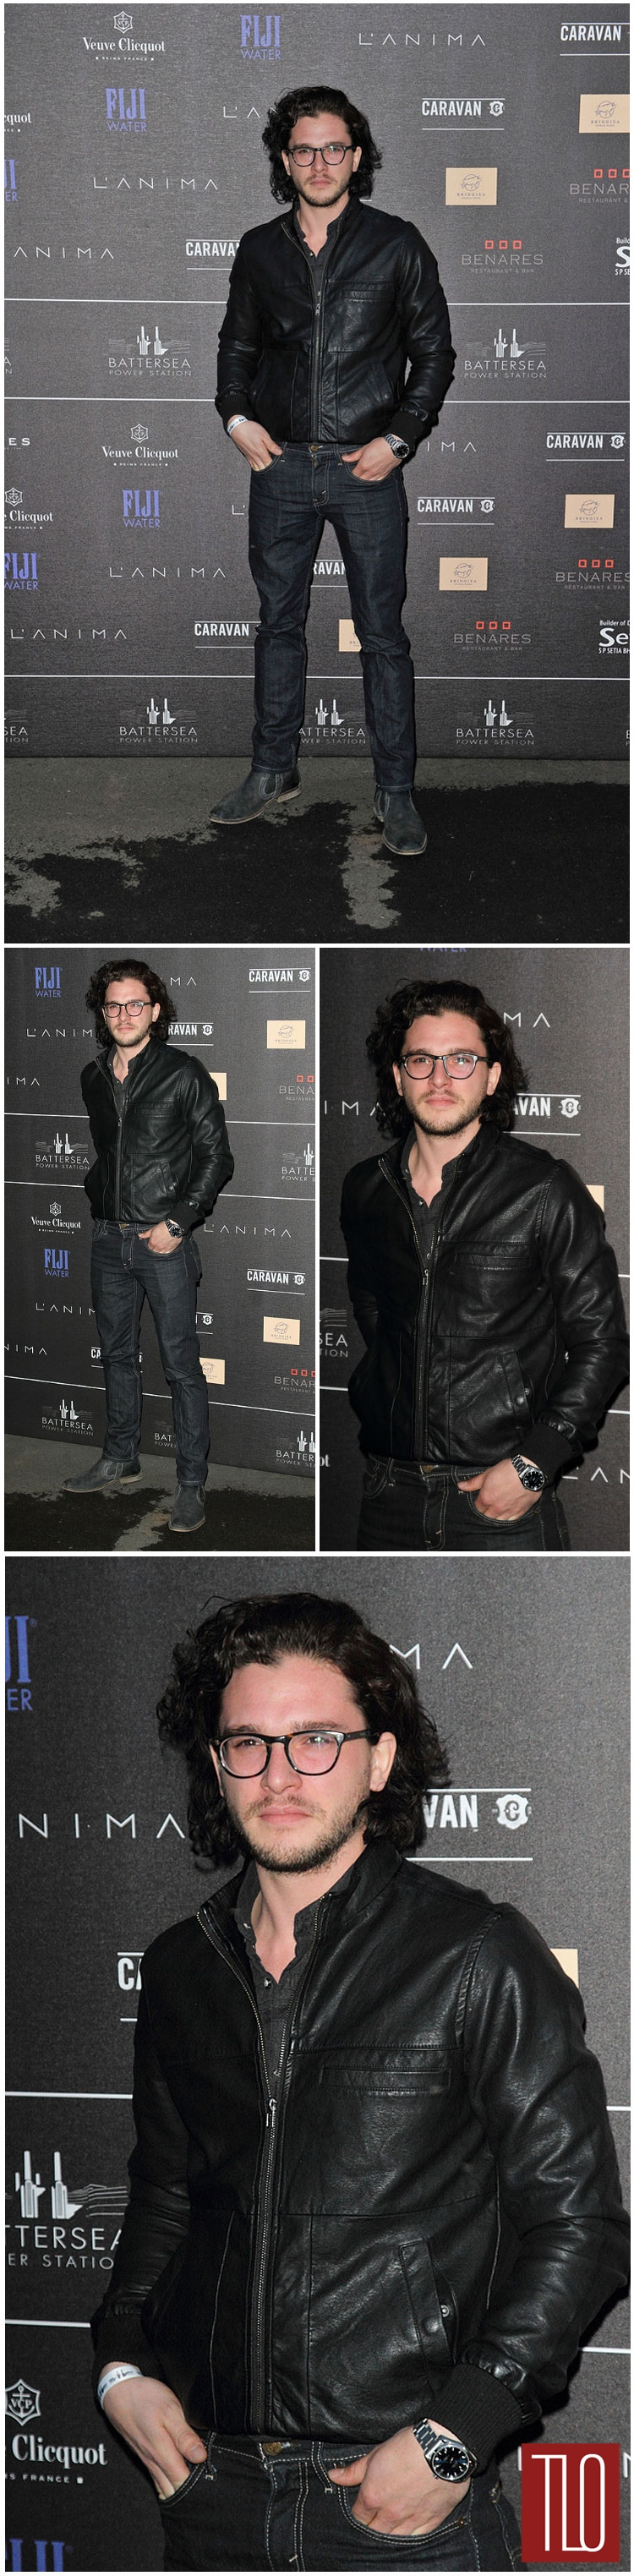 Kit-Harington-Luke-Evans-Battesea=Party-Tom-Lorenzo-Site-TLO (1)